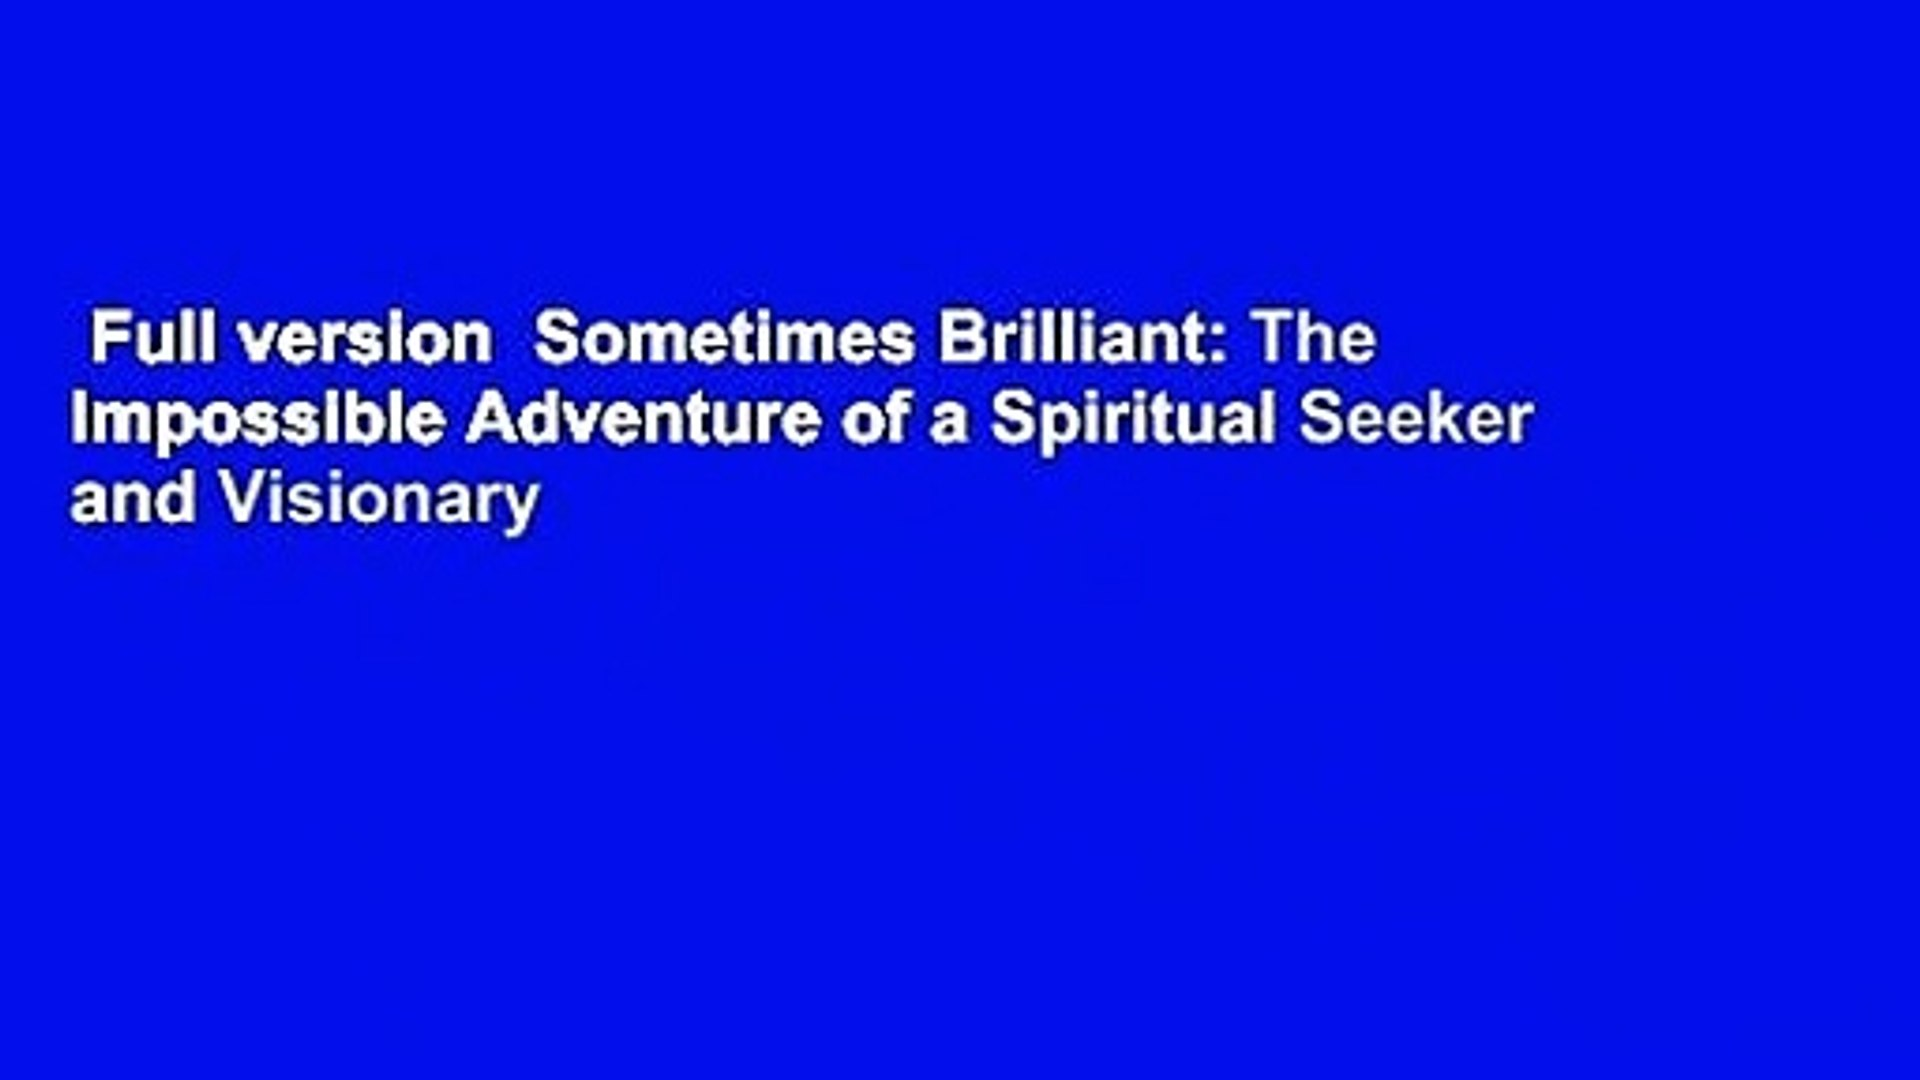 Full version  Sometimes Brilliant: The Impossible Adventure of a Spiritual Seeker and Visionary